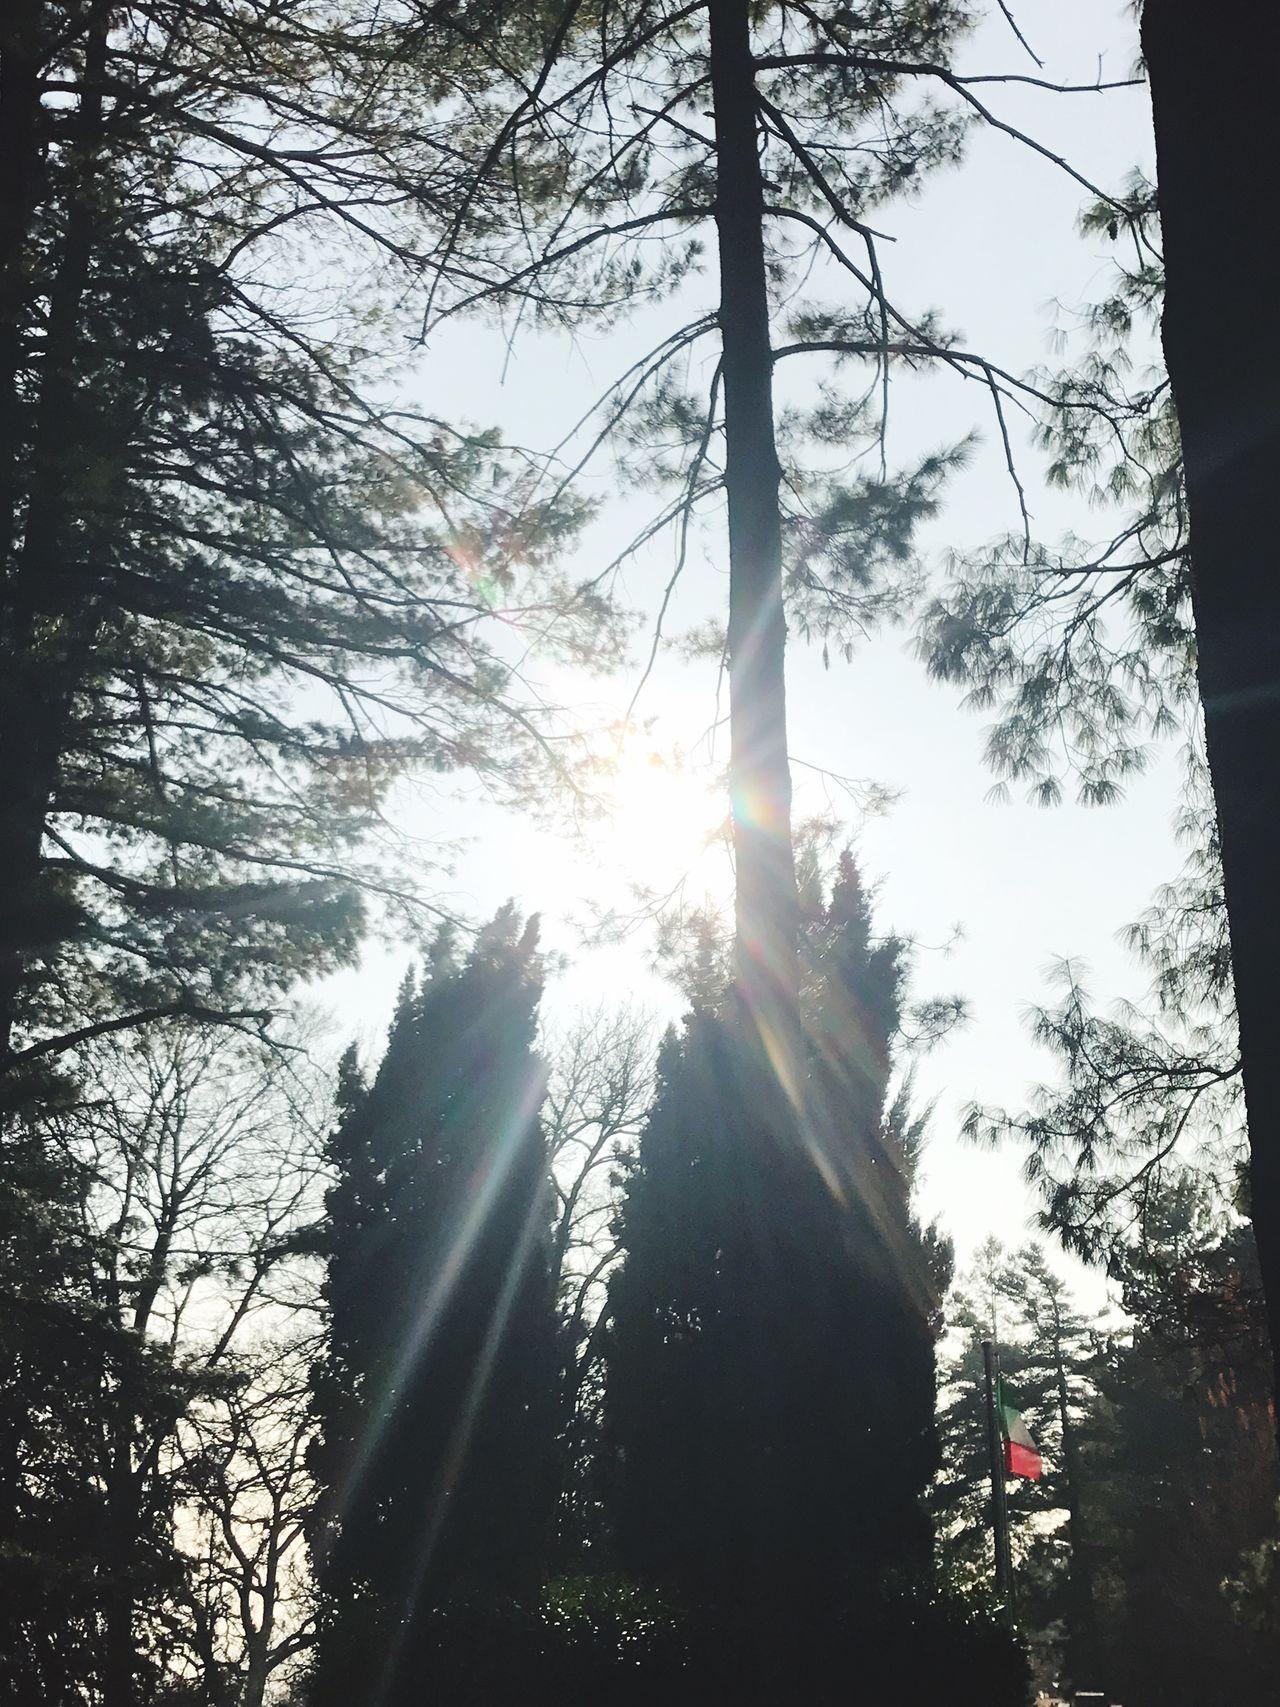 Nature Lover Naturelovers Nature_collection Low Angle View Lens Flare Sun Sunbeam Sunlight Shining Nature Tree_collection  Nature Collection Nature Photography Trees Conifers Coniferous Tree Landscape Nature Photography Landscape_Collection Tree_collection  Sunset Silhouettes Sun_collection